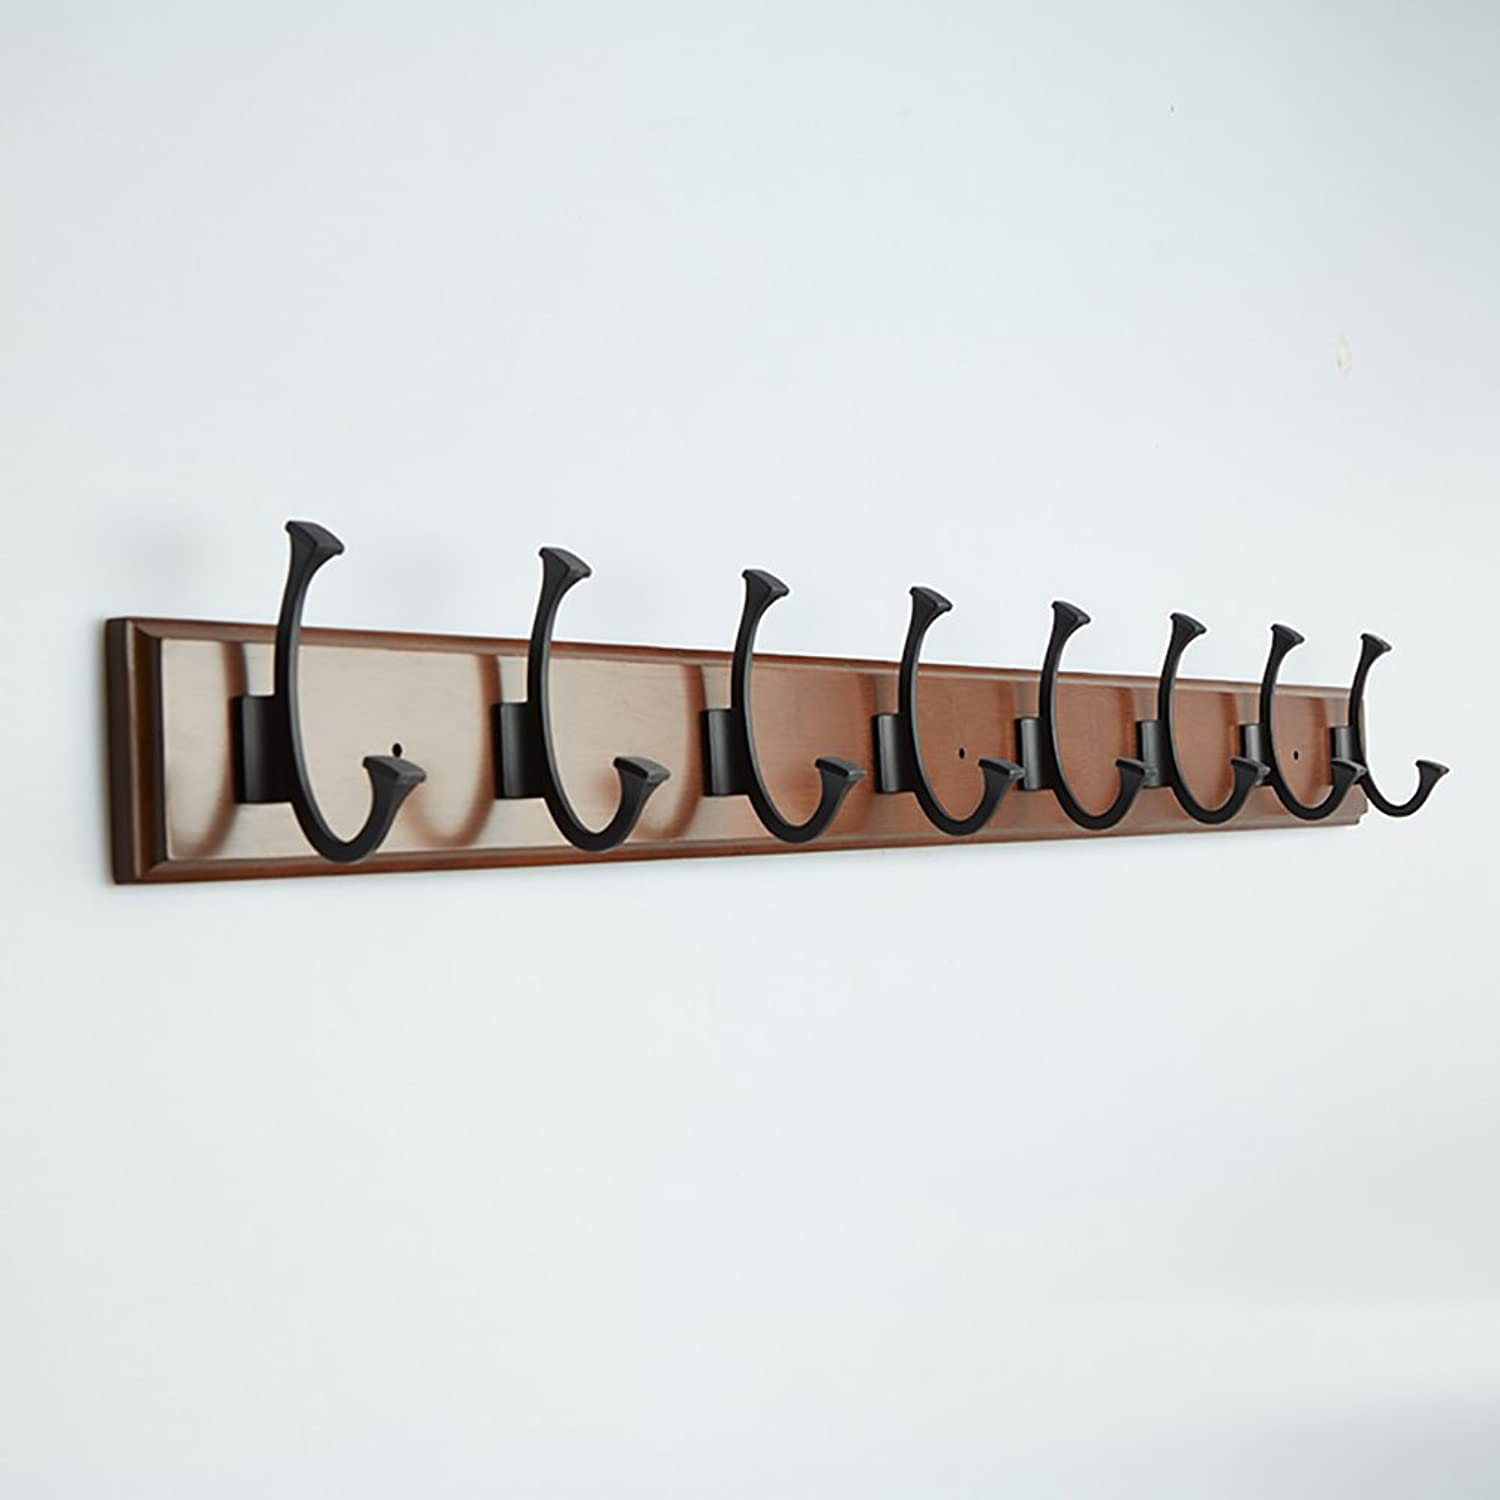 LXLA- Shelf Hangers Coat Rack Hook up Double Wood Bamboo Wall-Mounted White Brown (Available 4,5,6,7,8 Hooks, 48.4 61.2 74 86.8 99.6×8×1.8 cm) (color   Brown, Size   8 Hooks)